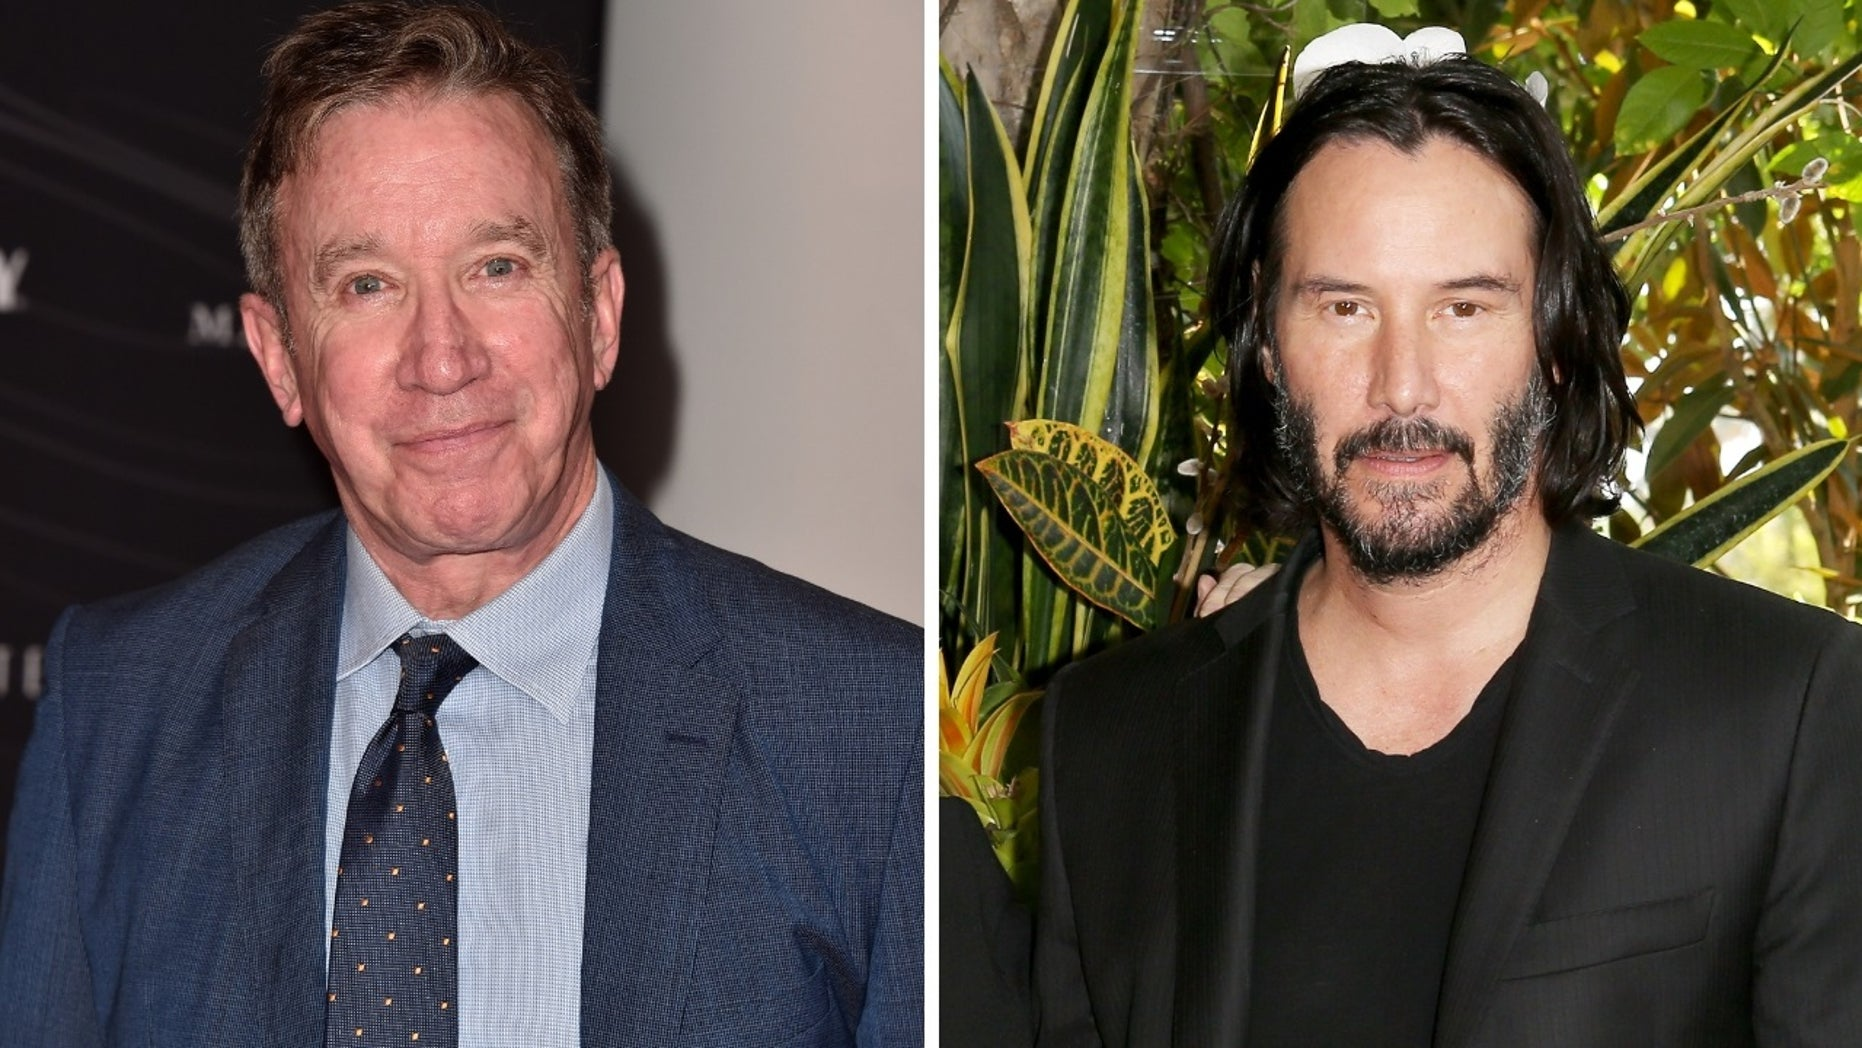 Tim Allen revealed that Keanu Reeves has a part in the next movie